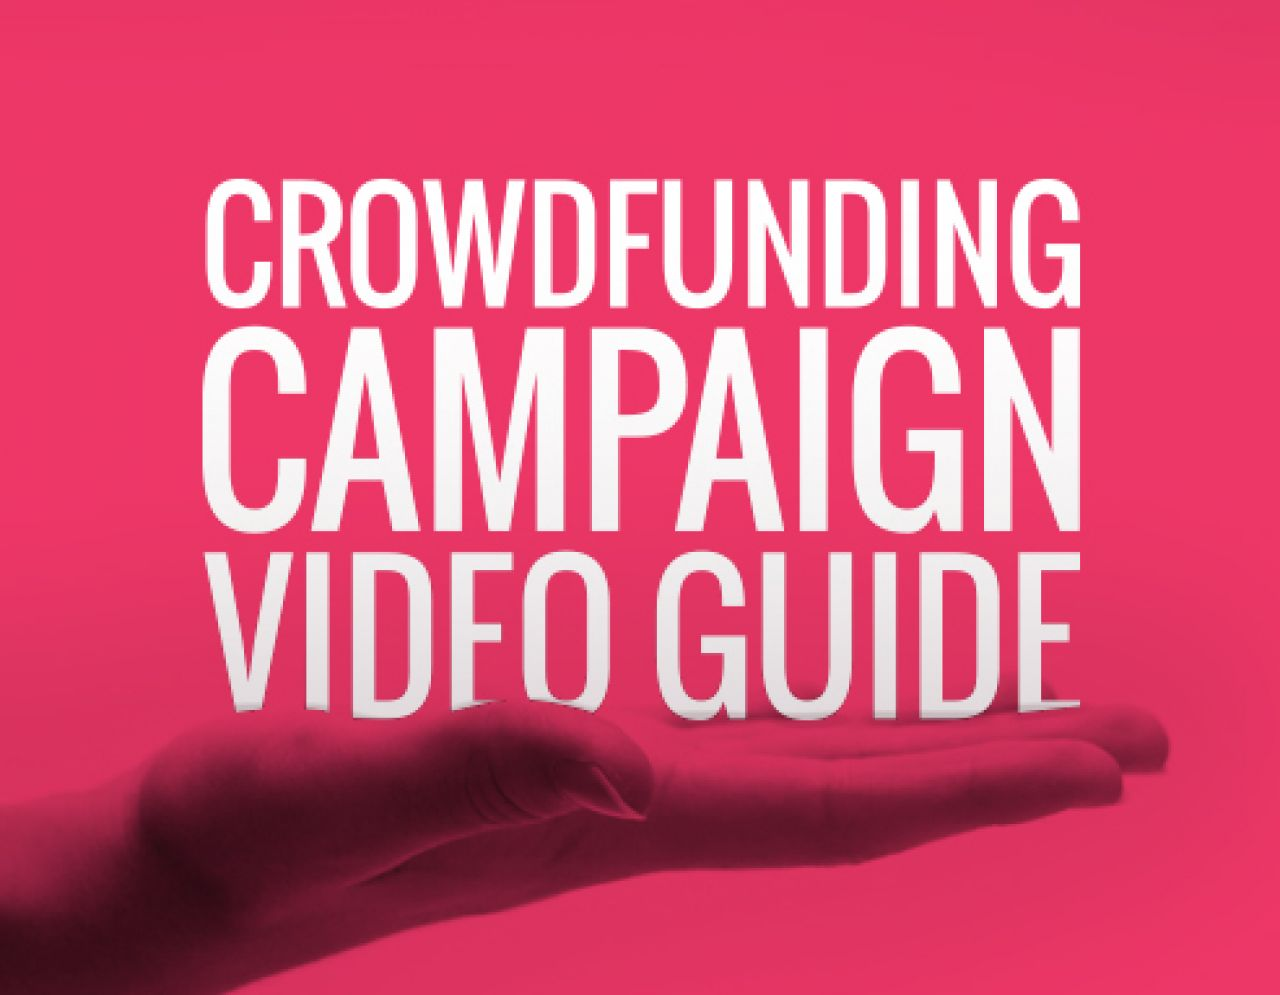 crowdfunding campaign video guide